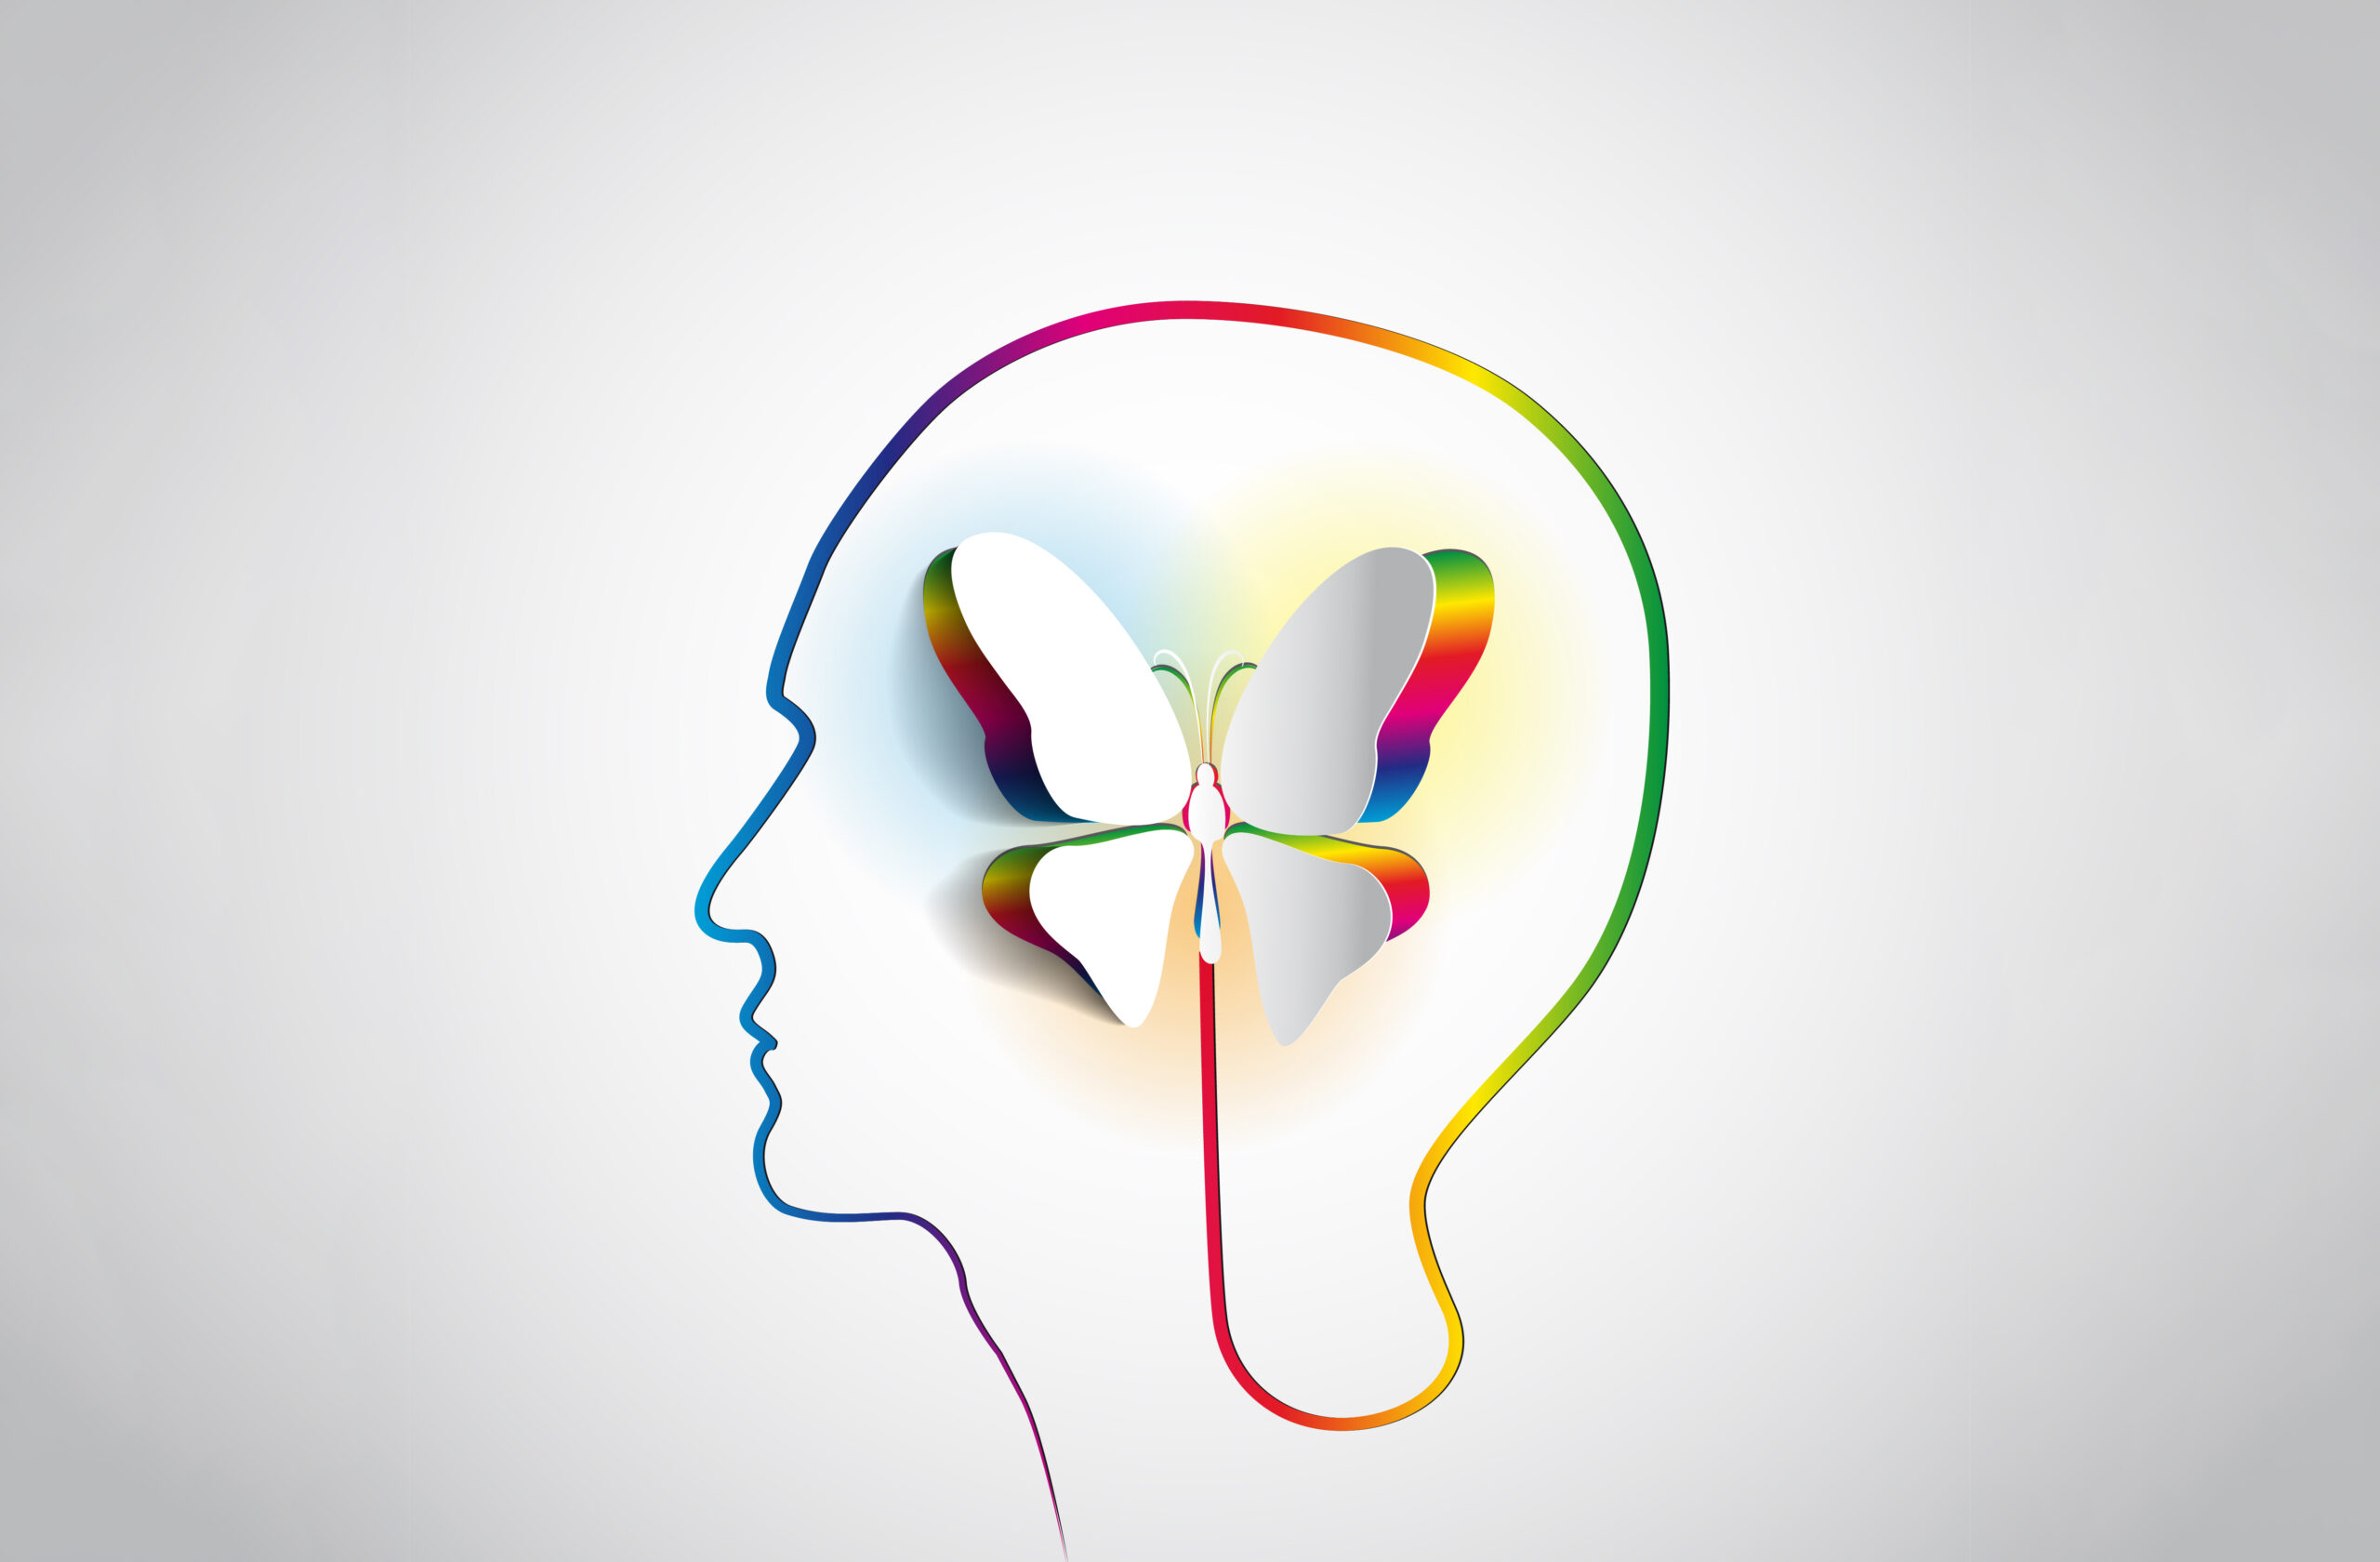 shape of a head and neck outline in rainbow colors with a 3 dimensional butterfly in the middle also outlined in rainbow colors